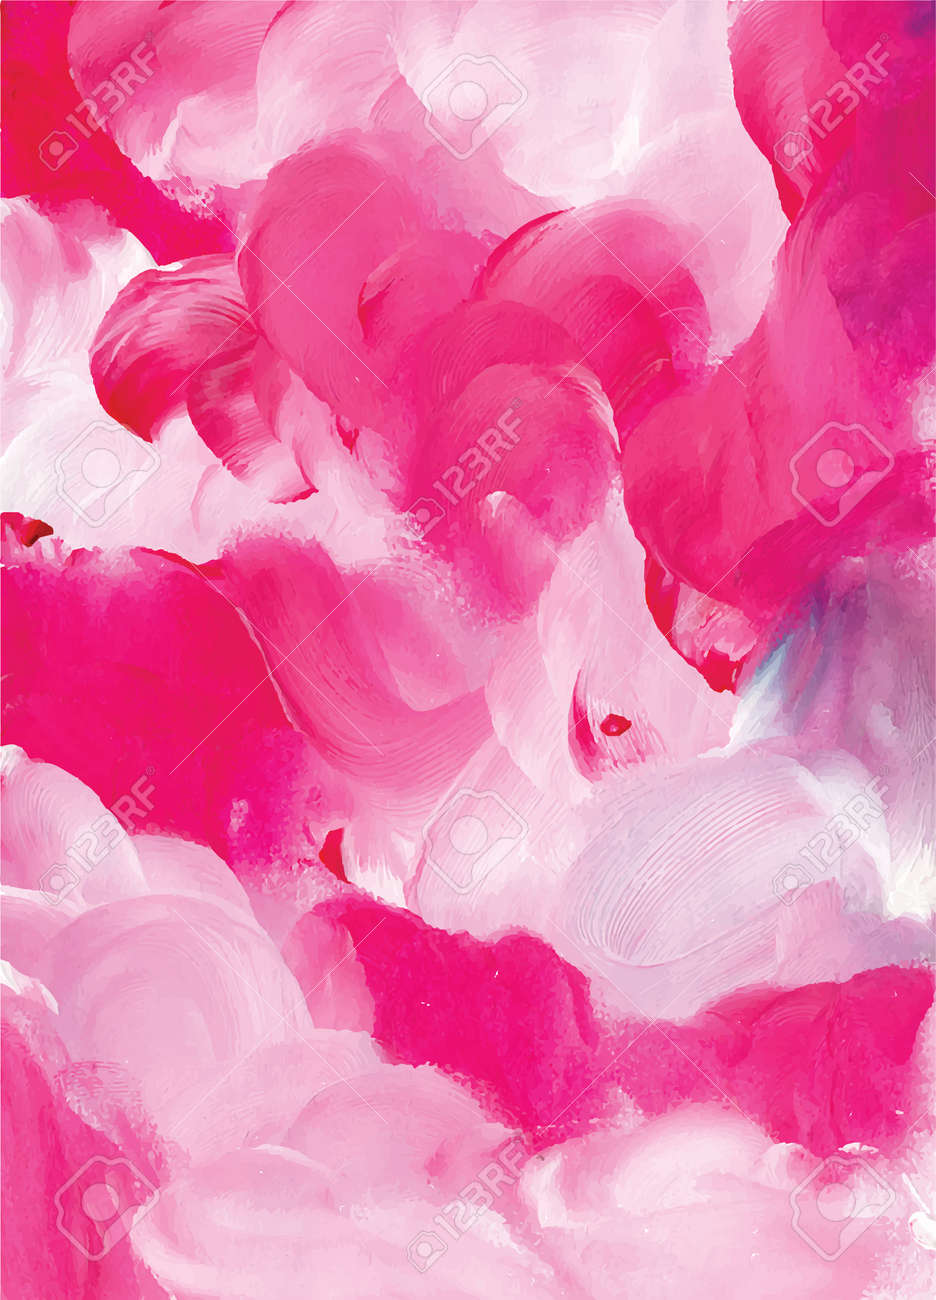 Abstract pink watercolor background hand drawn illustration - 169282138